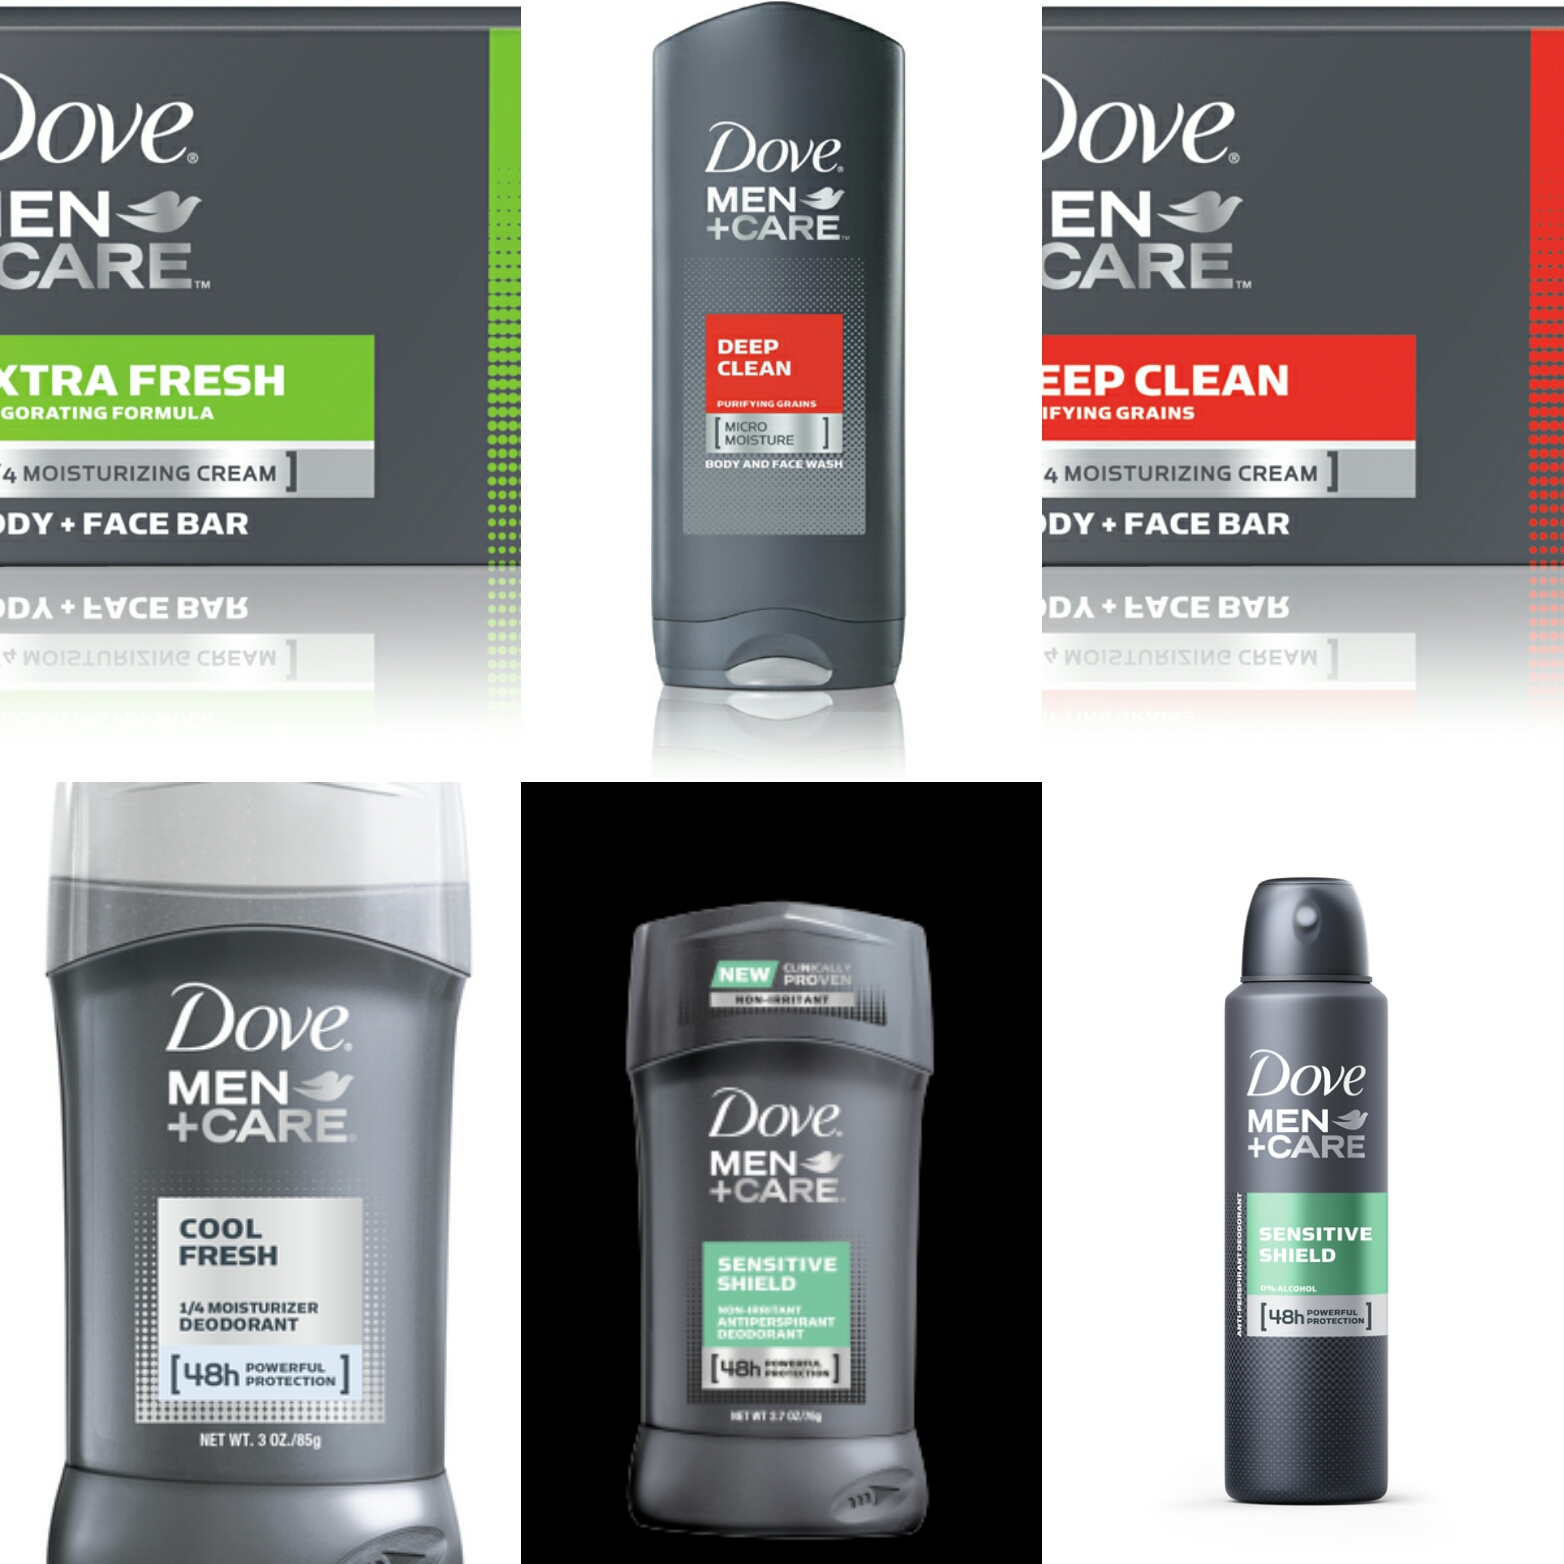 5 Reasons Guys Should Invest In Dove Men+Care Products: Q&A With Dr. Terrence Keaney